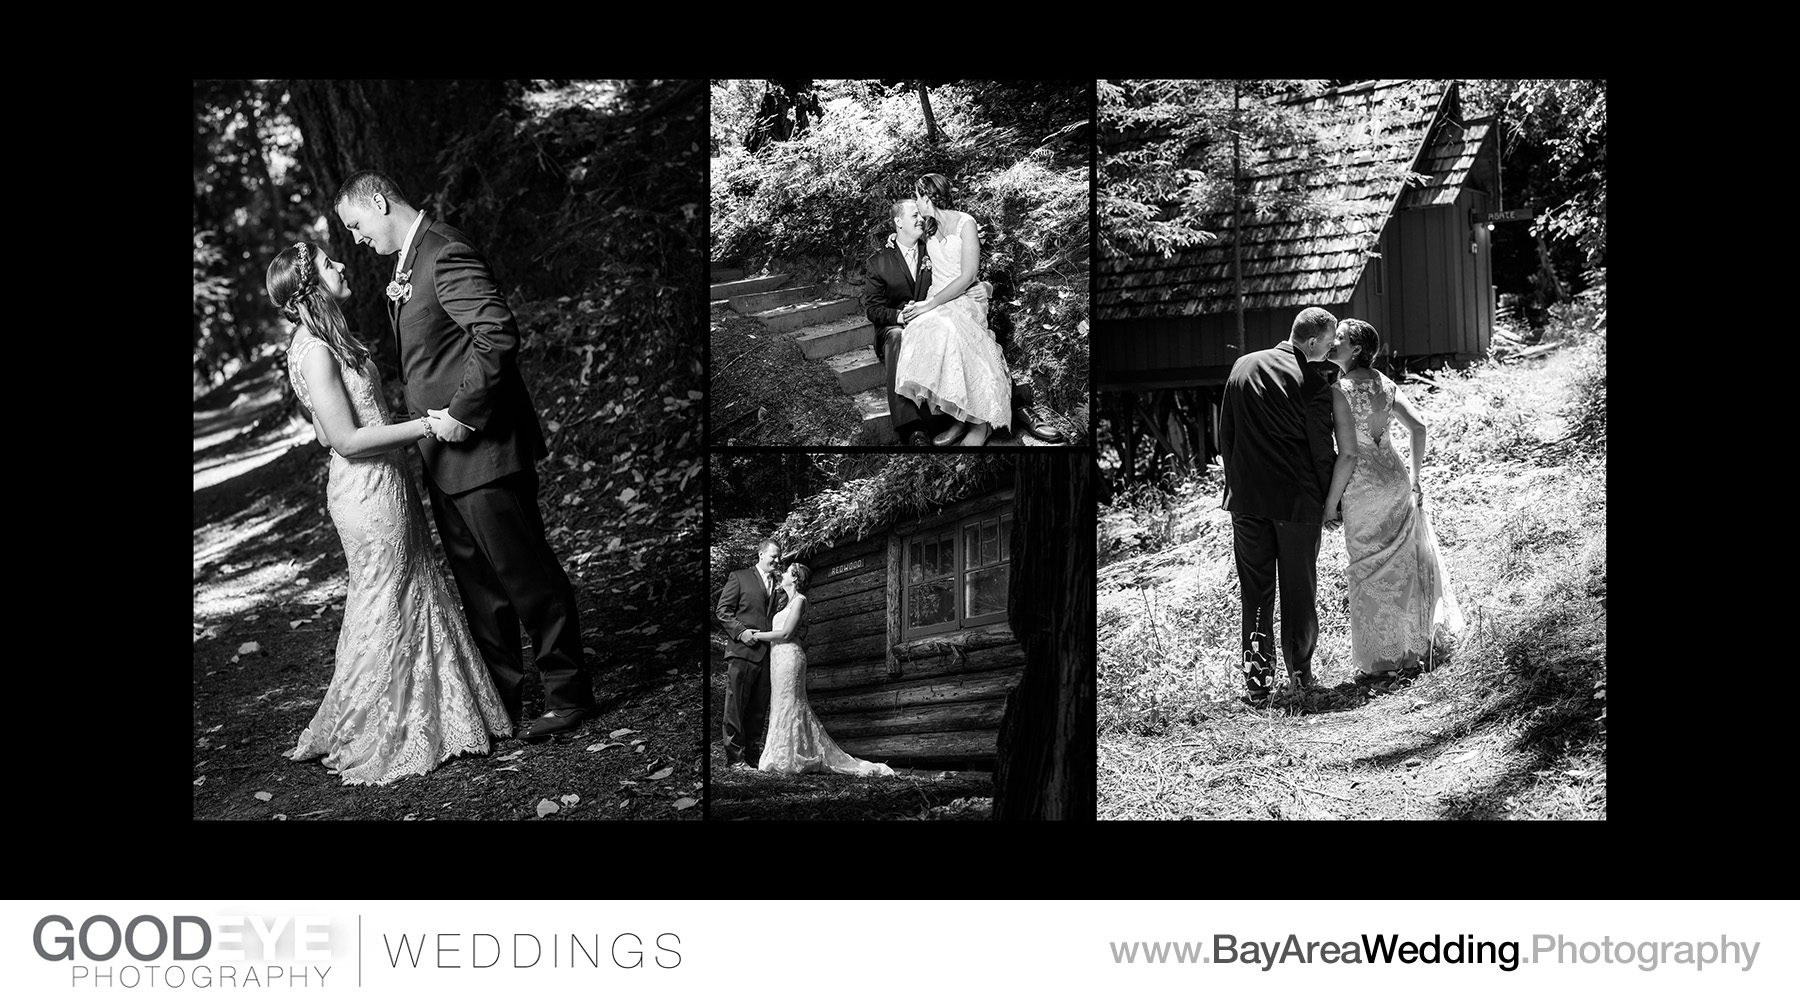 Waterfall Lodge Wedding Photography - Ben Lomond, California - J